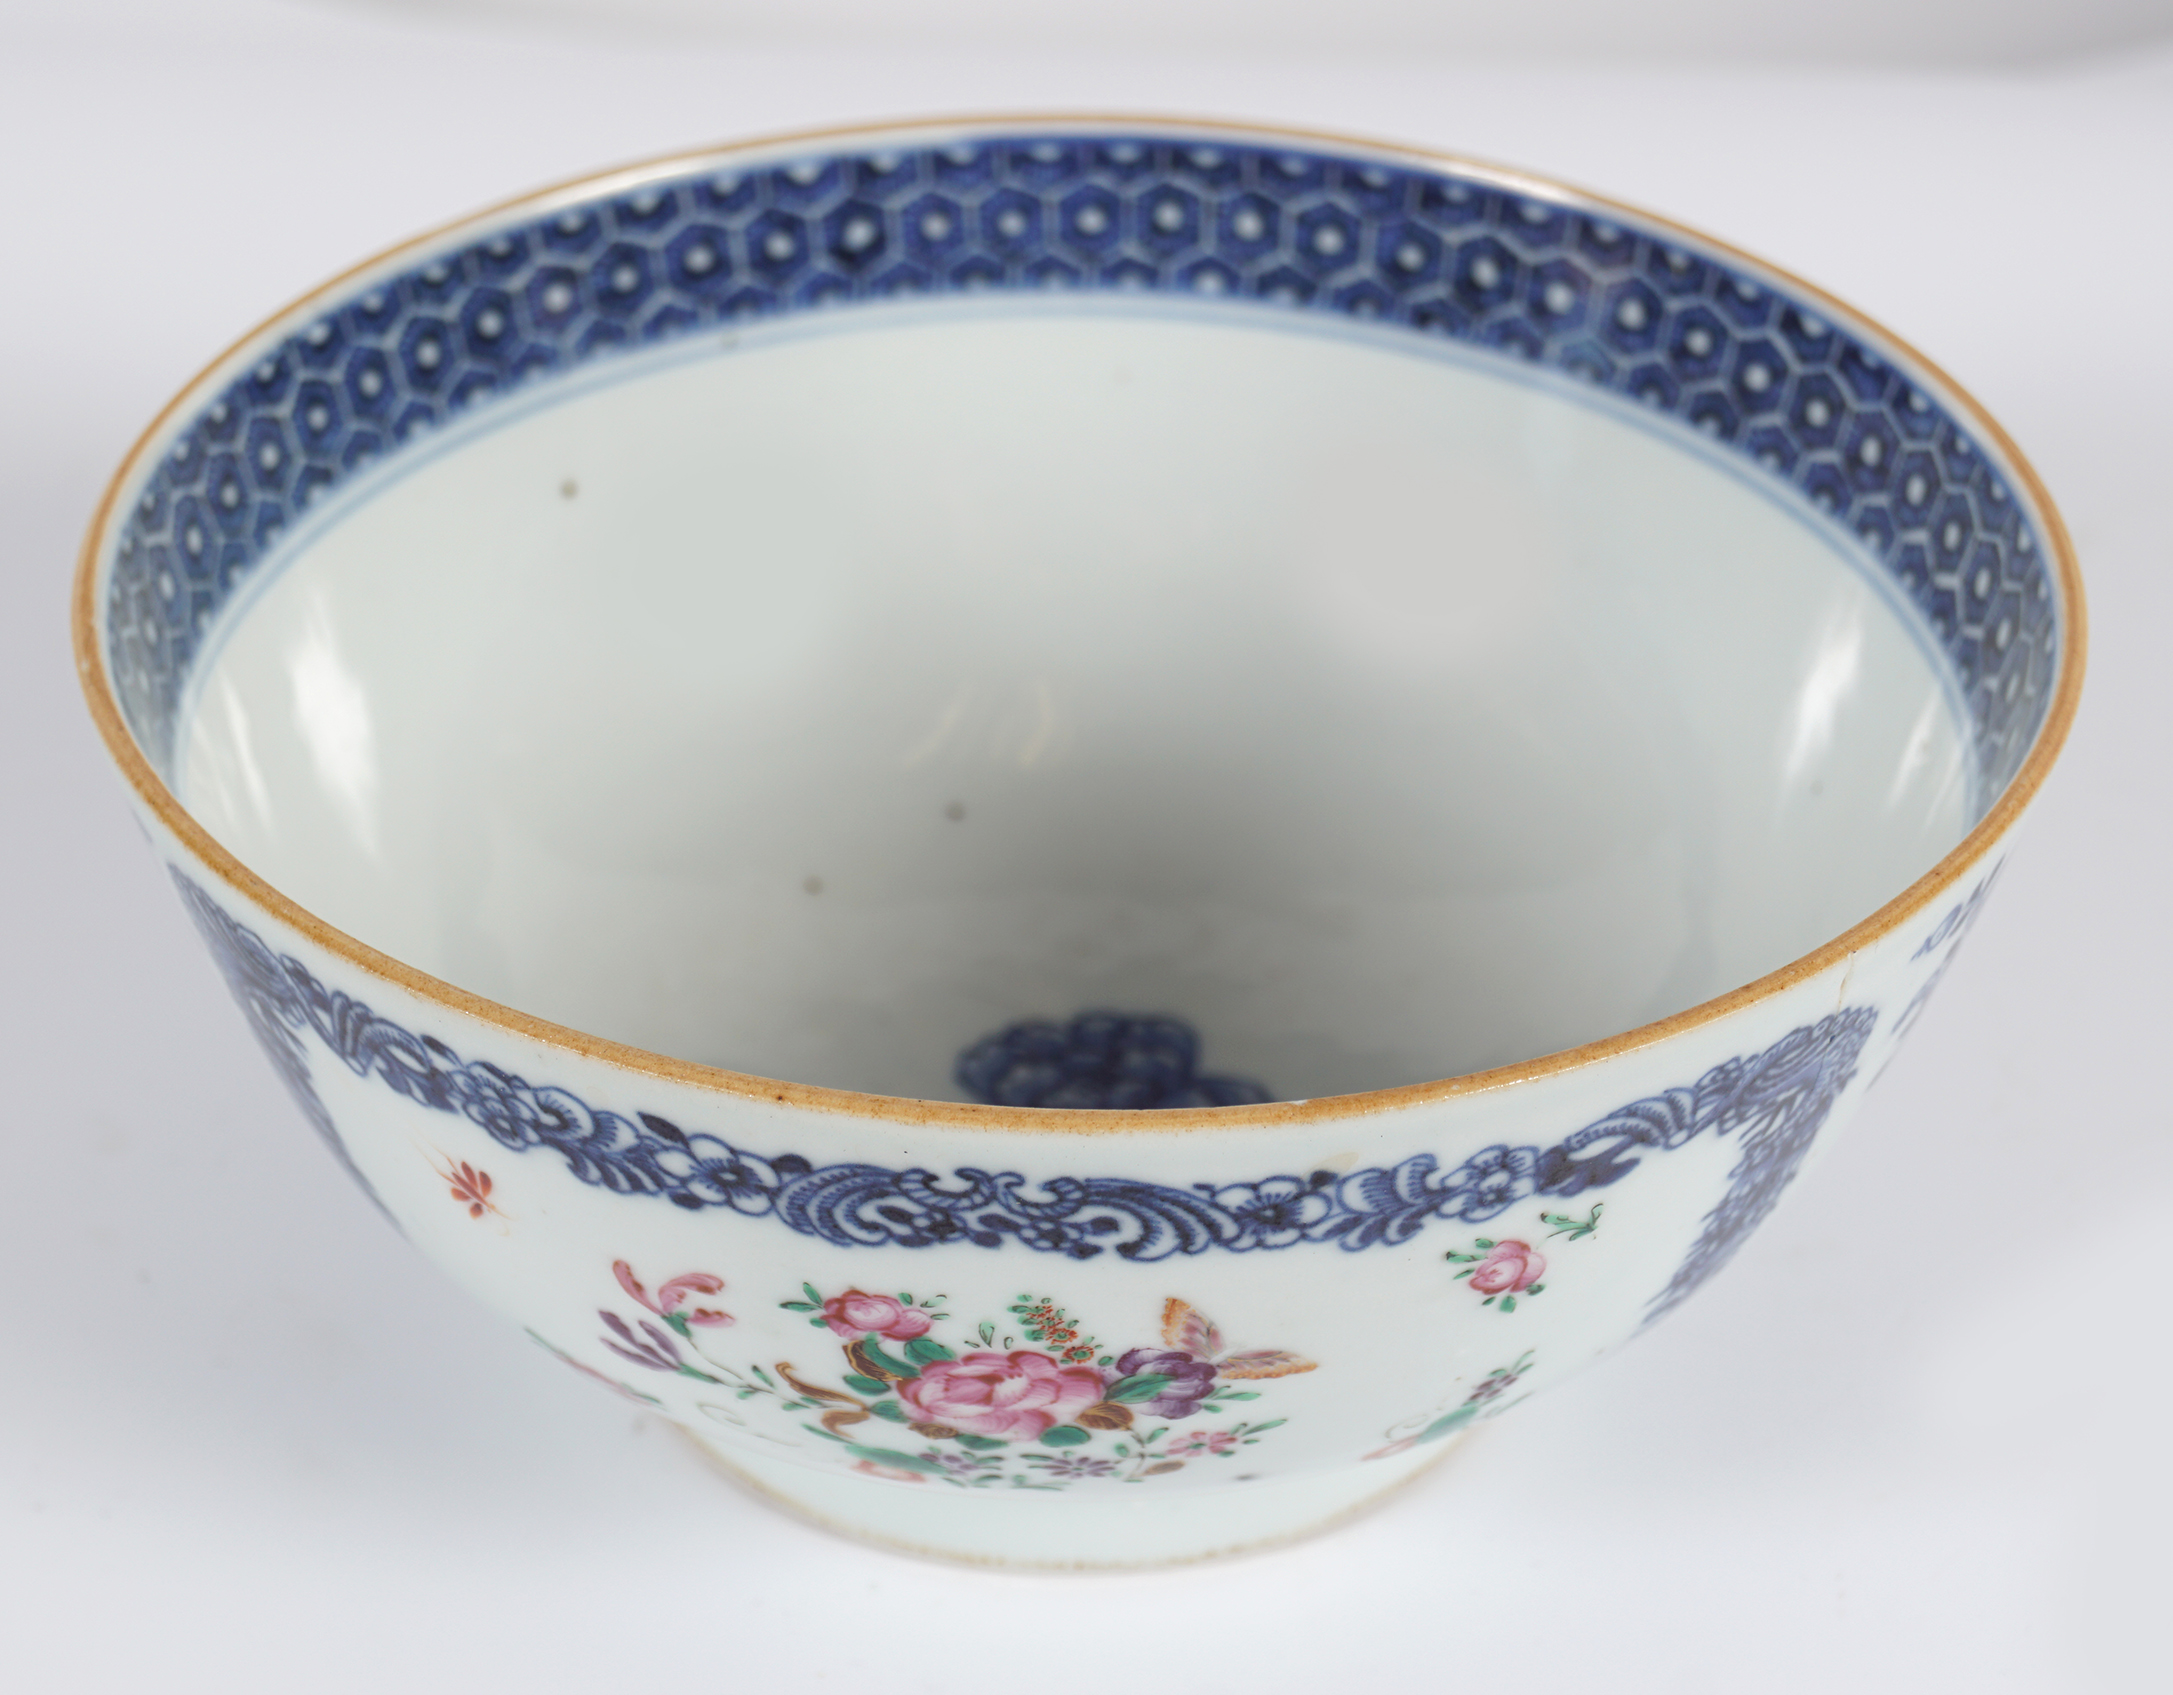 18TH-CENTURY CHINESE FAMILLE ROSE BOWL - Image 2 of 4